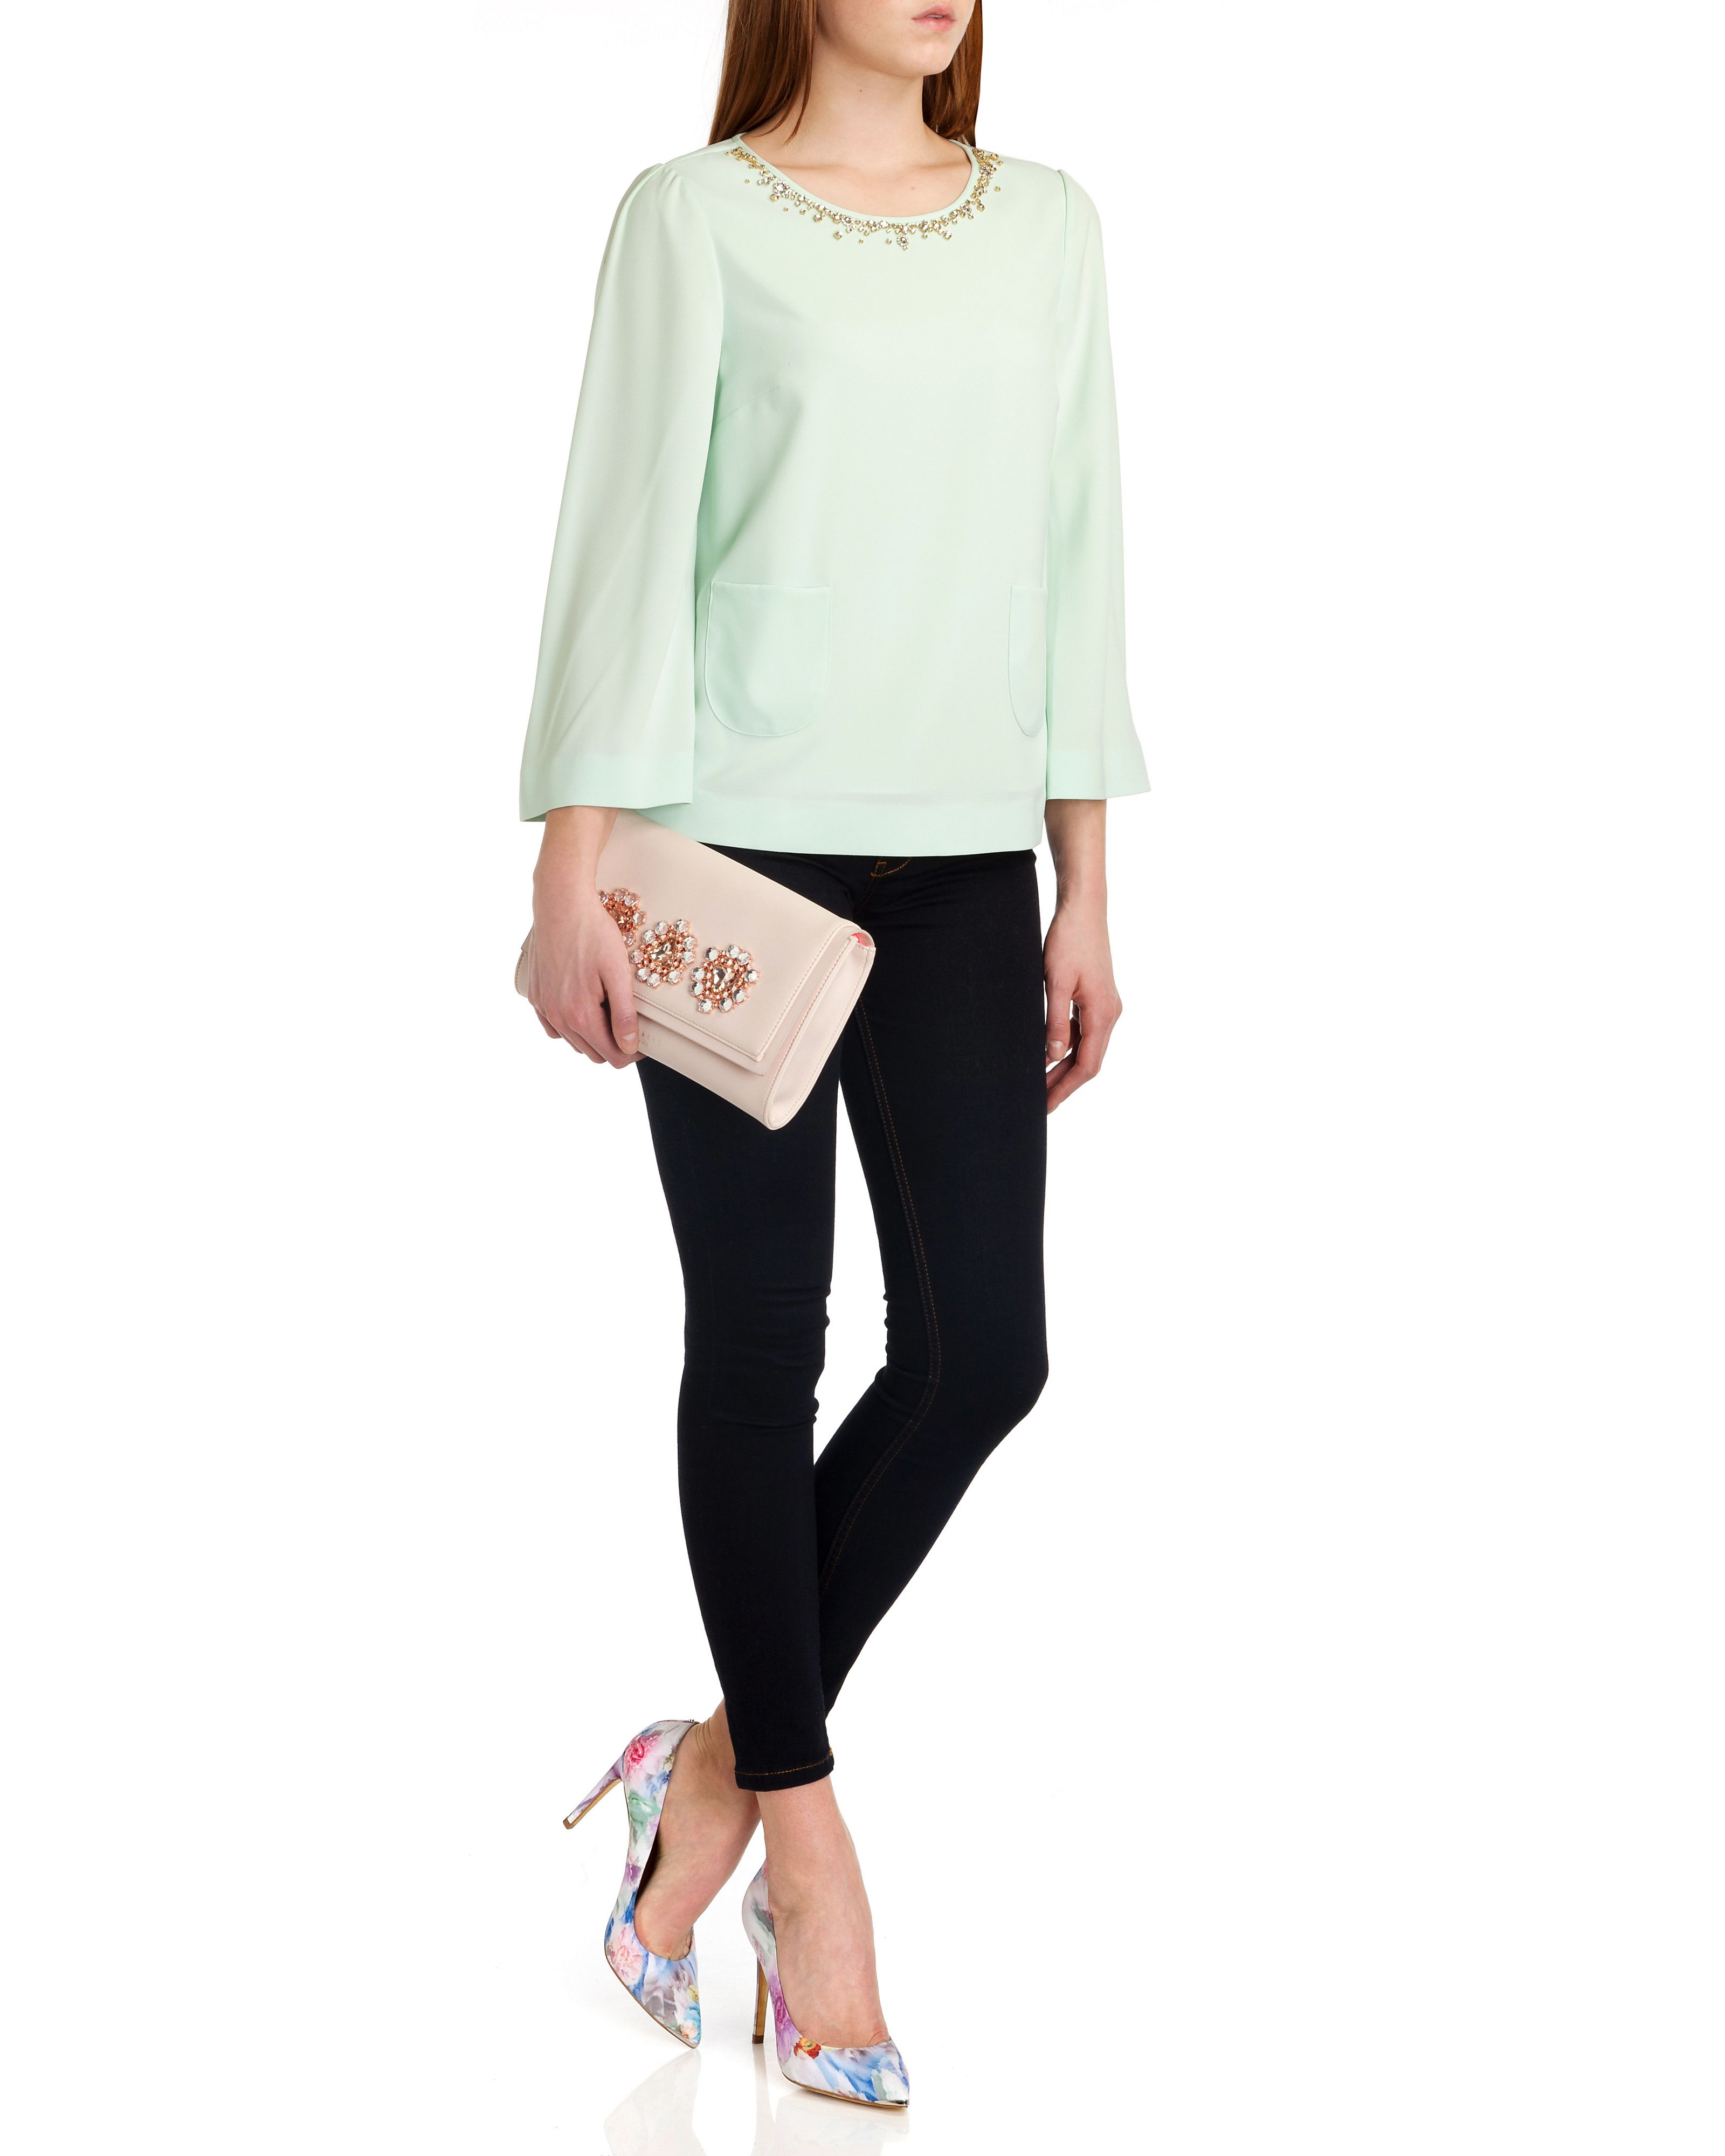 Viiva embellished neck top